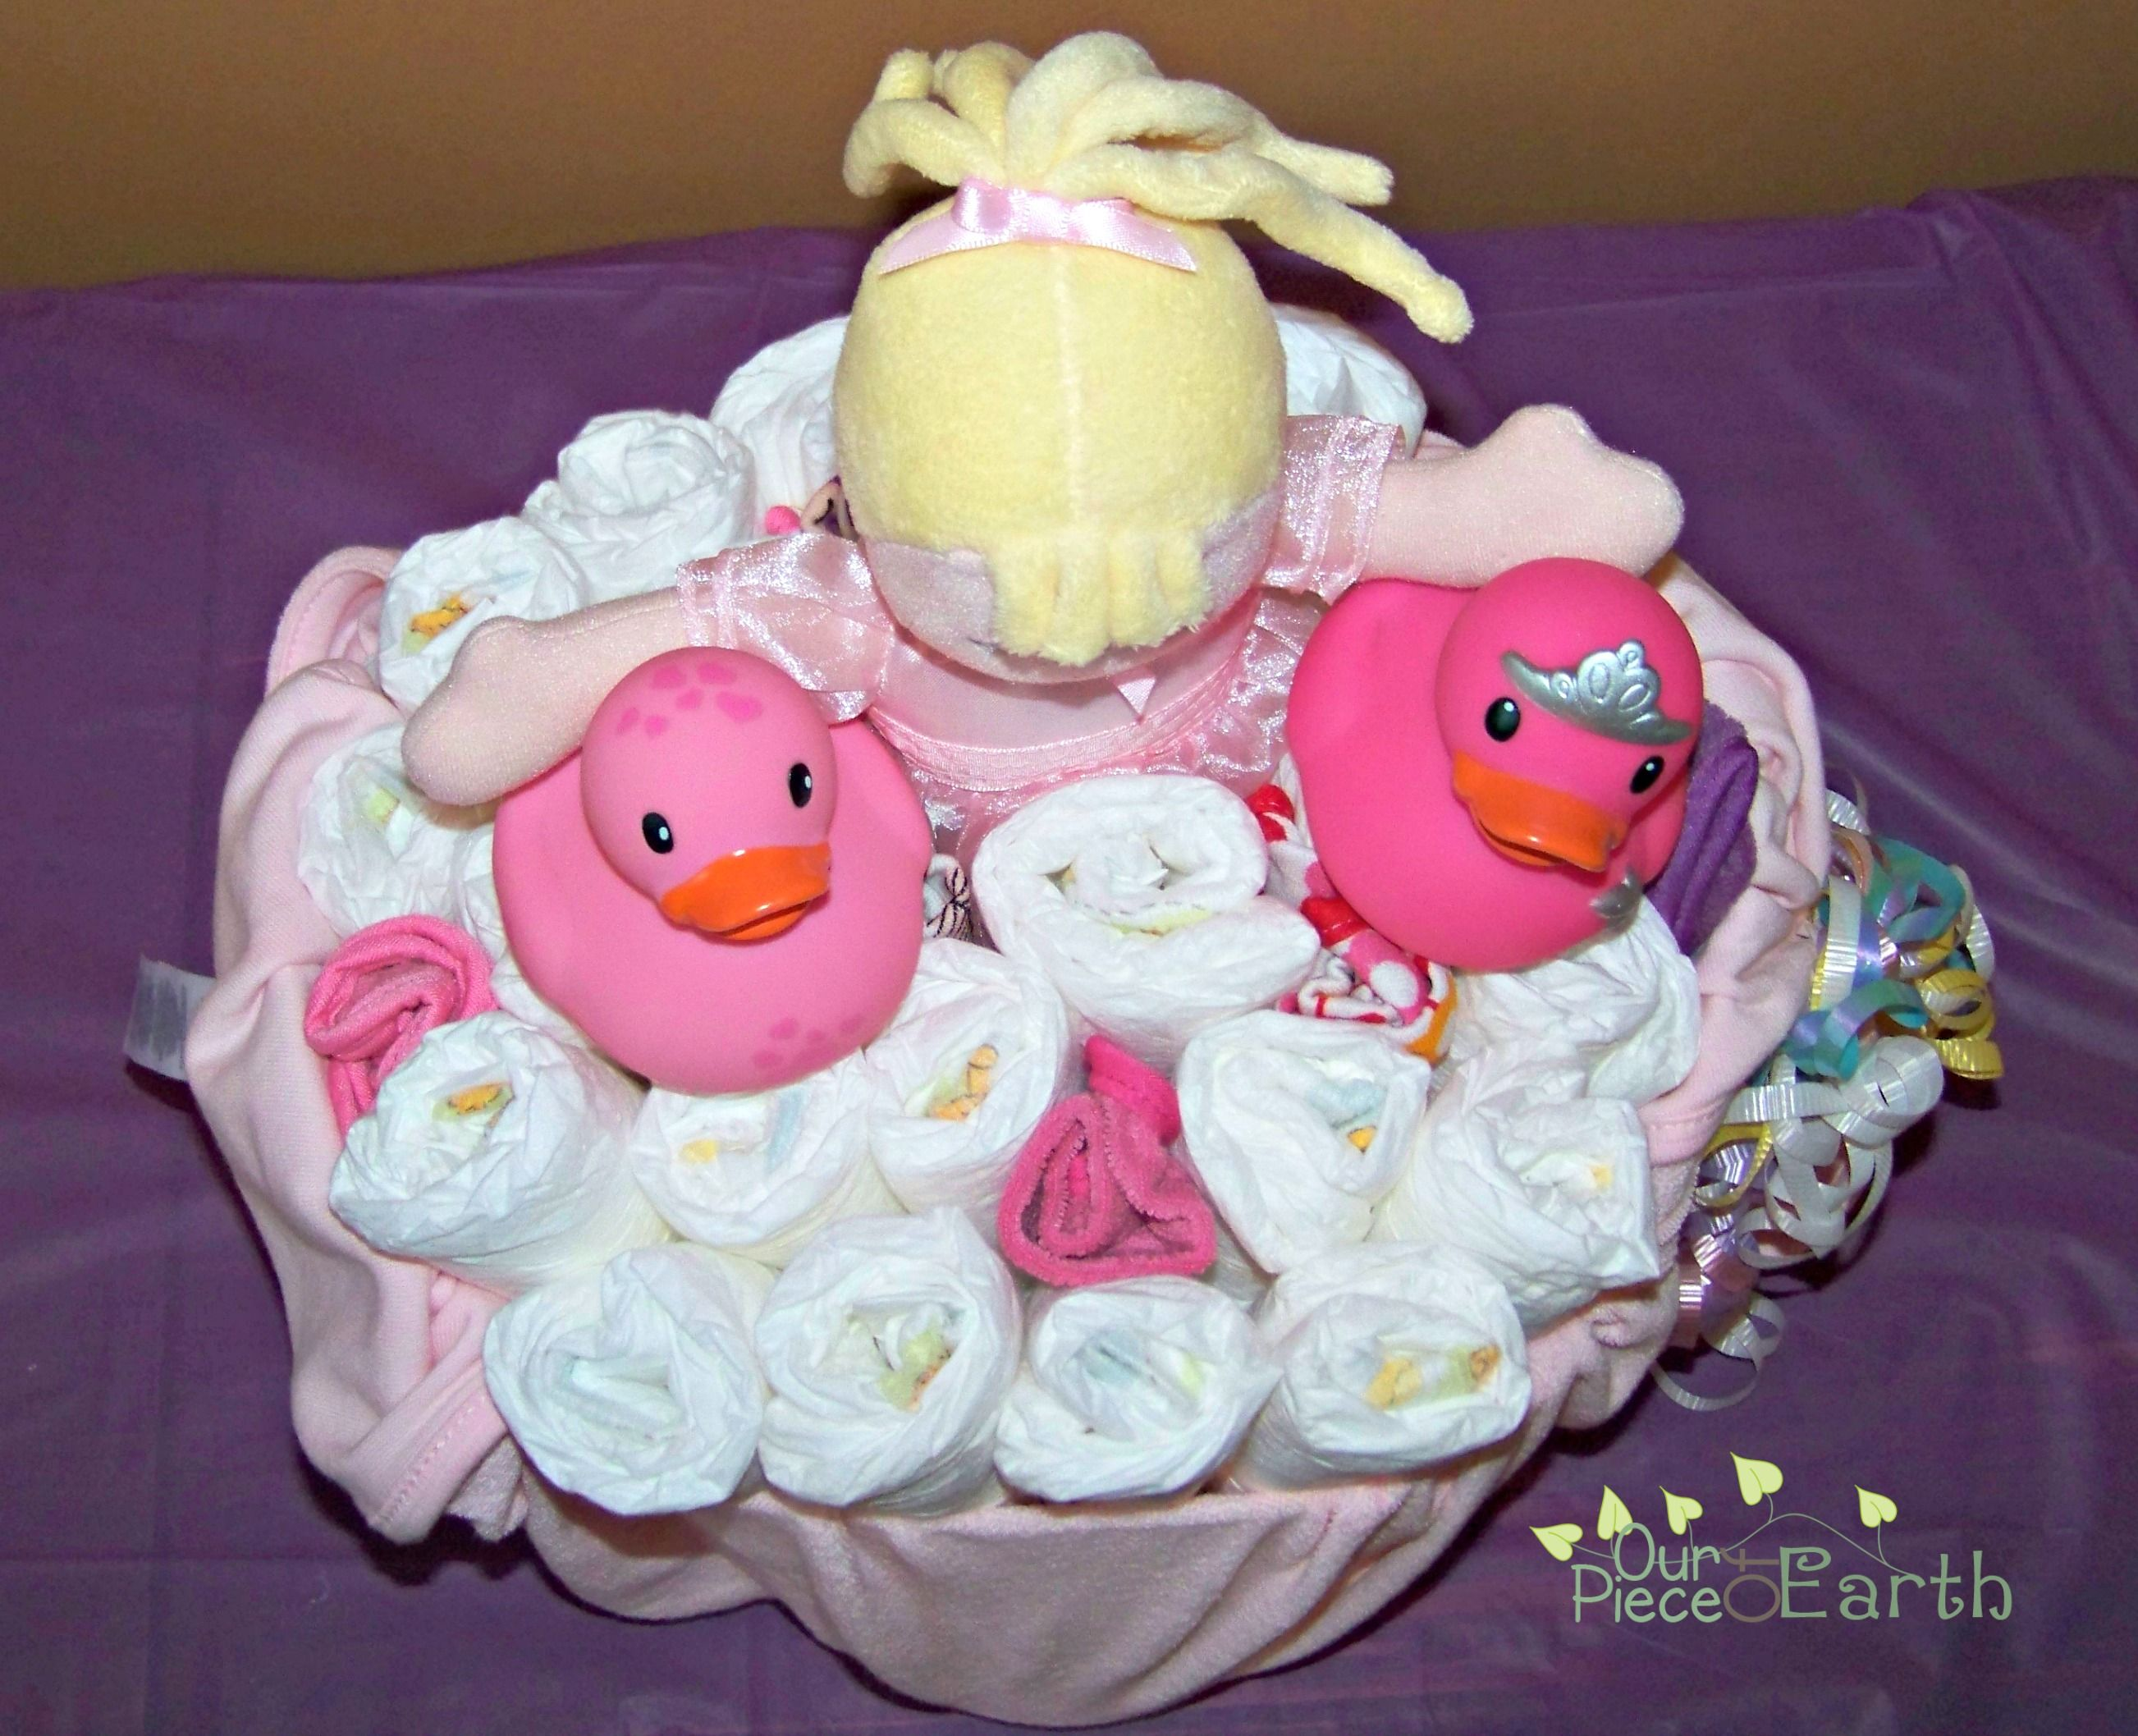 Make Diapers the Best Gift of All with This Baby Bath Diaper Gift Basket - Our Piece of Earth